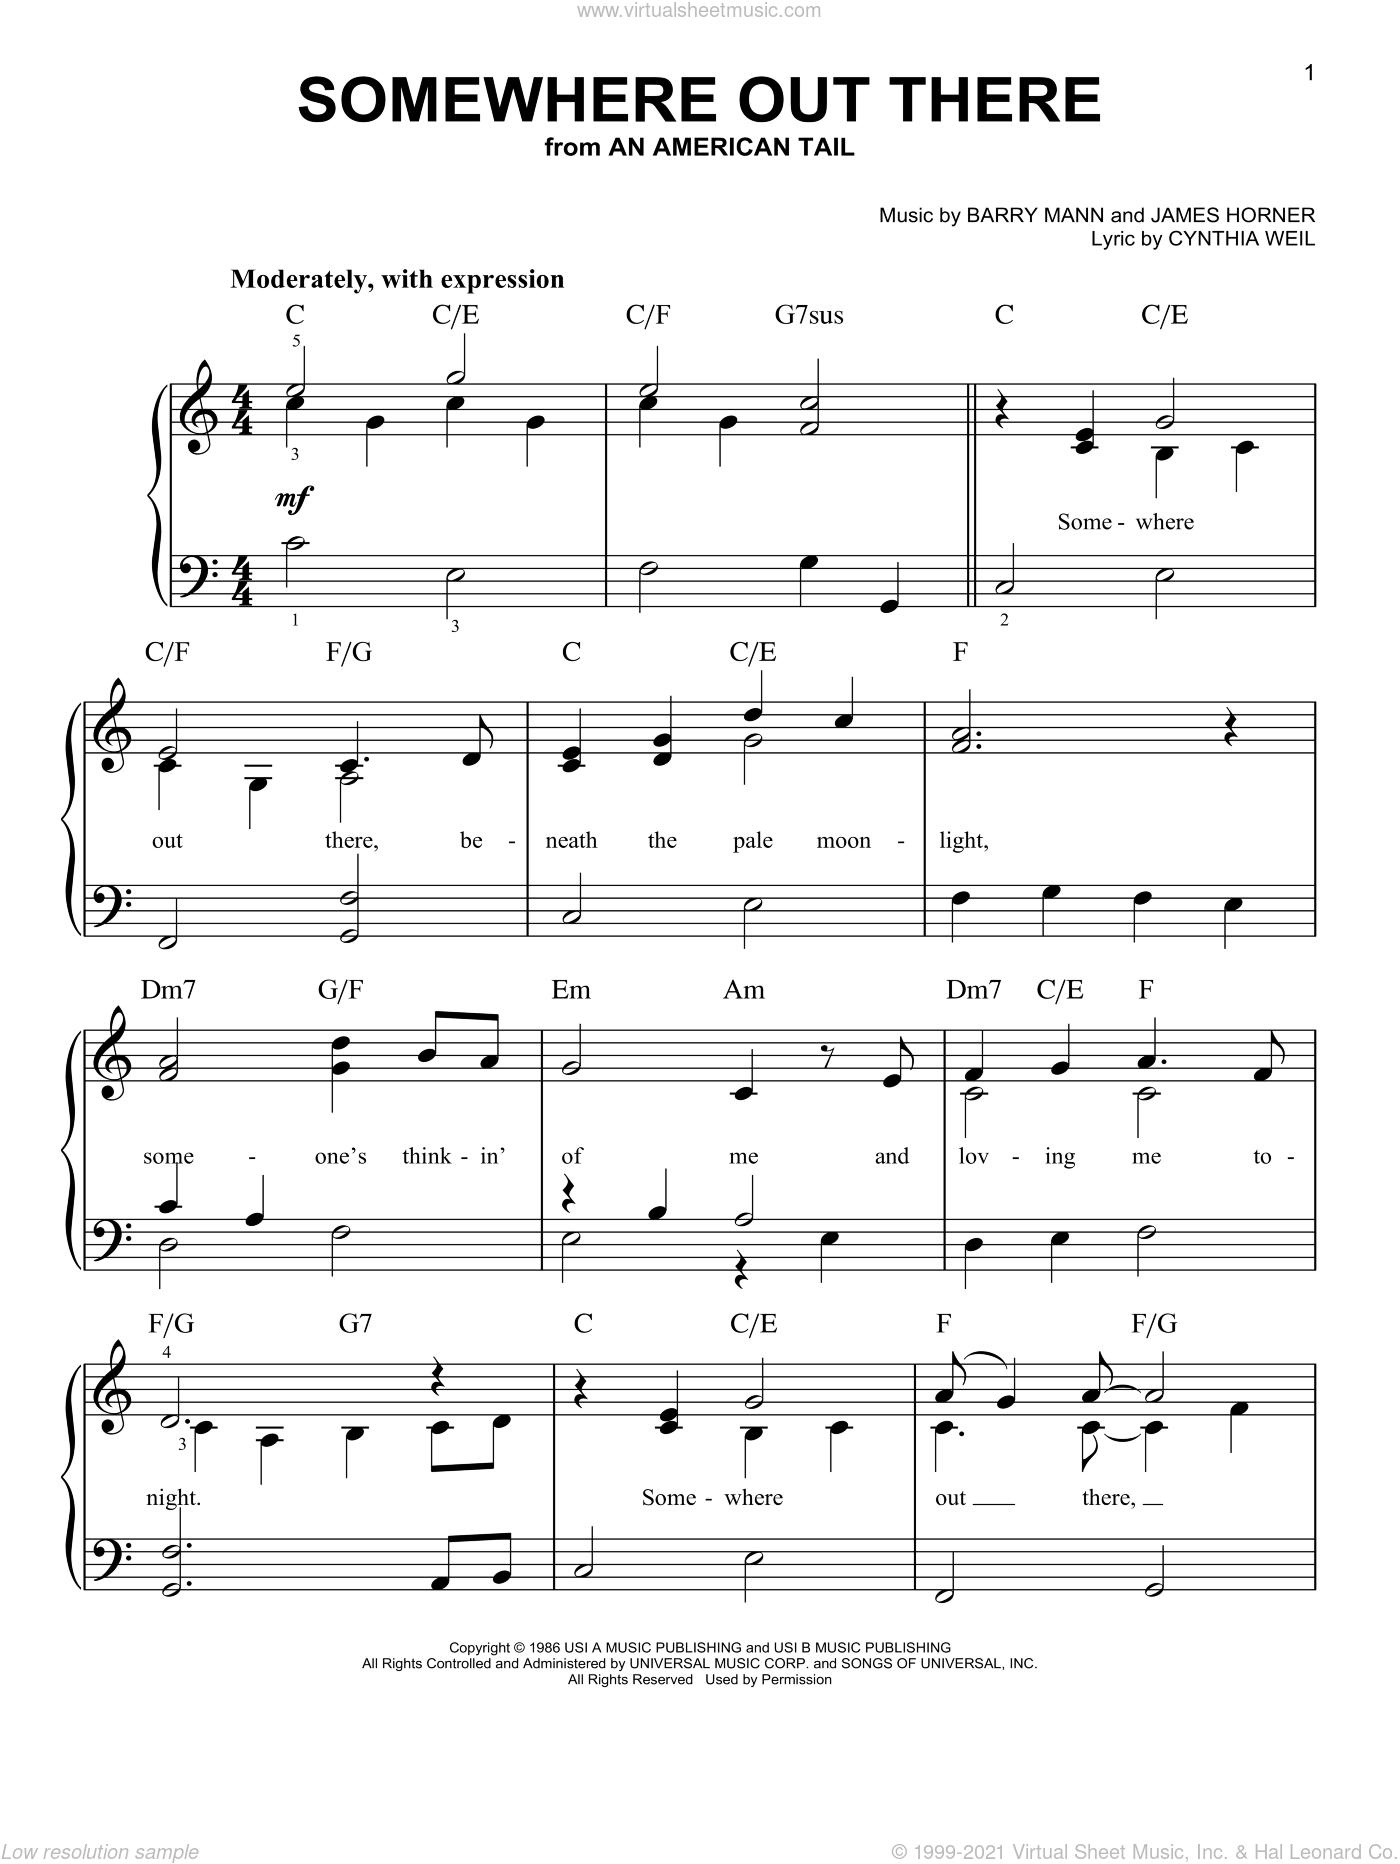 Somewhere Out There, (easy) sheet music for piano solo by Linda Ronstadt & James Ingram, James Ingram, Linda Ronstadt, Barry Mann, Cynthia Weil and James Horner, wedding score, easy skill level